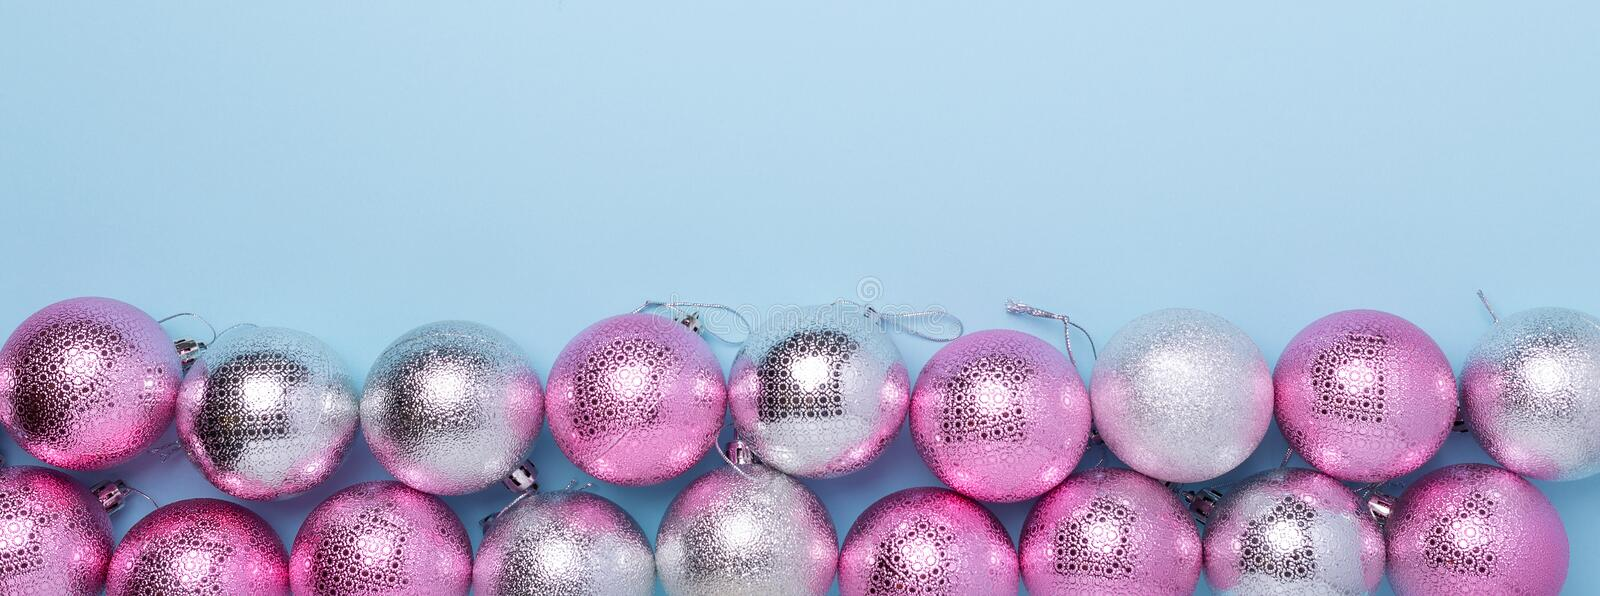 Christmas composition Pink and silver balls on pastel blue background. Web banner. Christmas, winter, new year concept stock photo